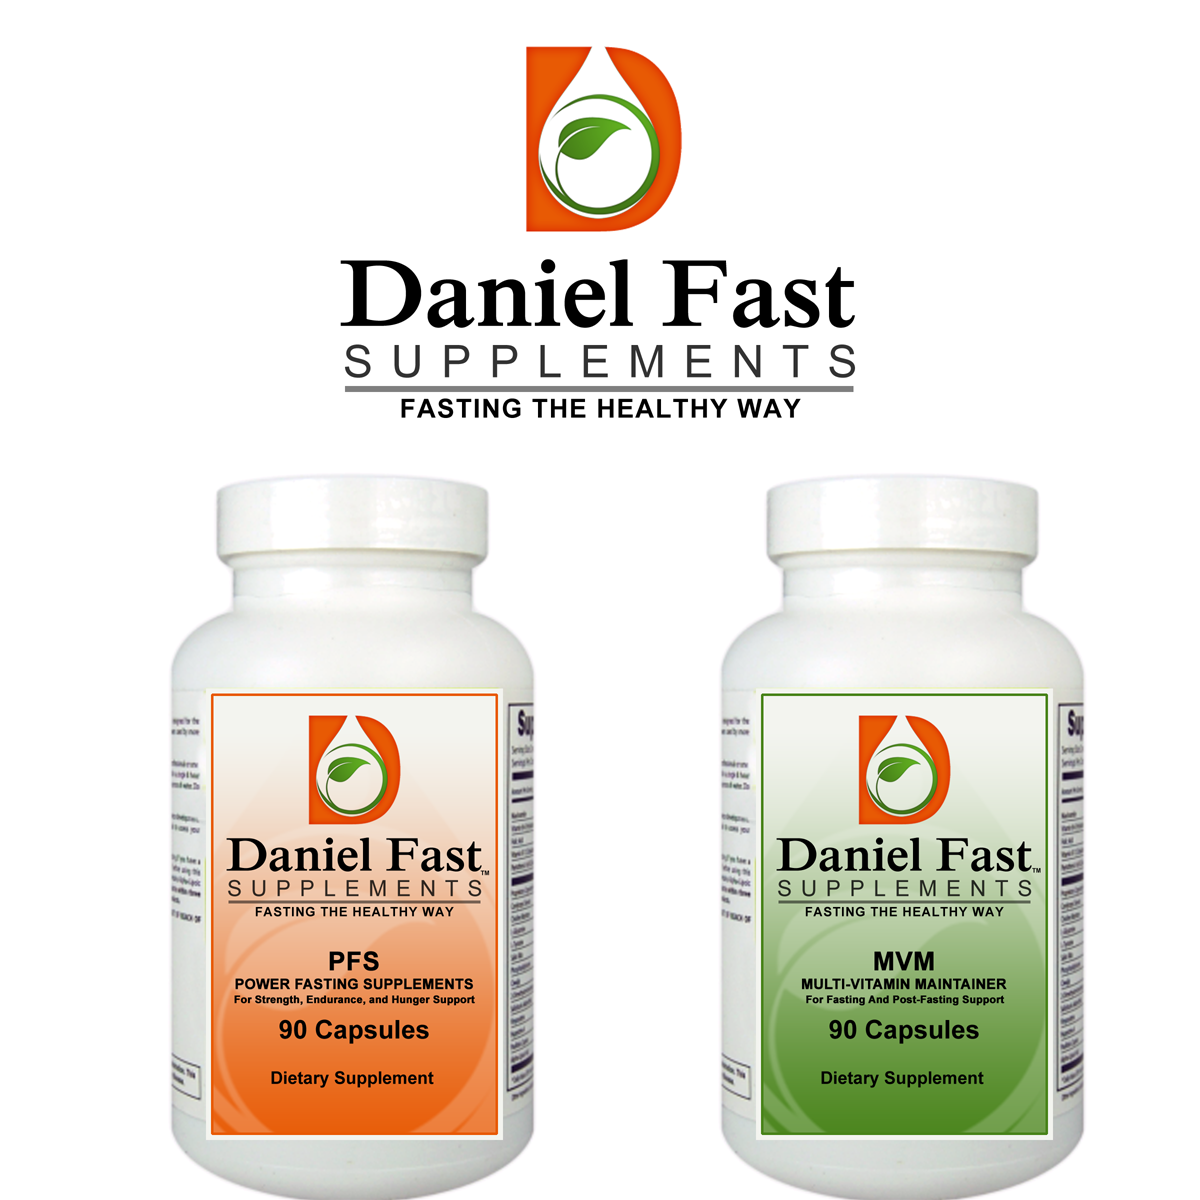 Create the next logo for Daniel Fast Supplements